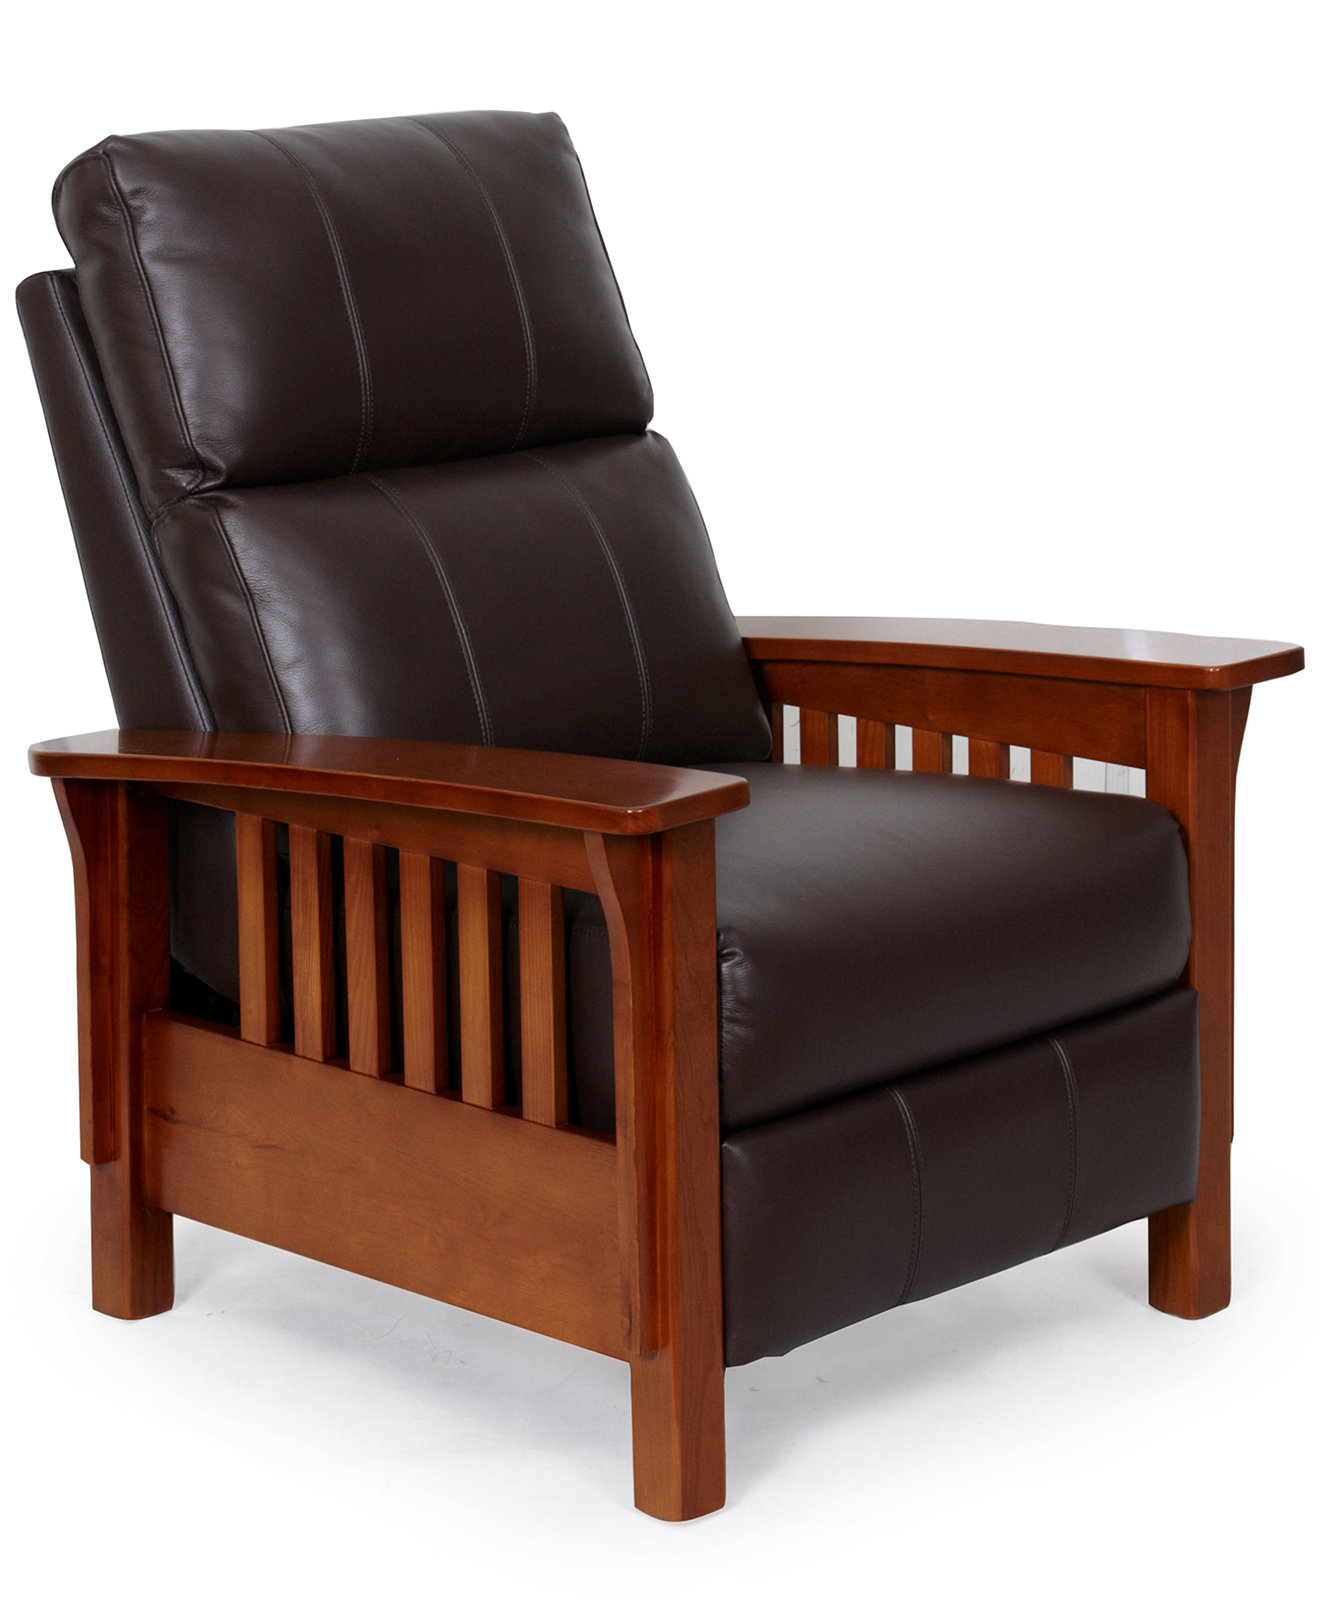 rocker recliner chair and a half loft bed with futon reviewing the best high end recliners |